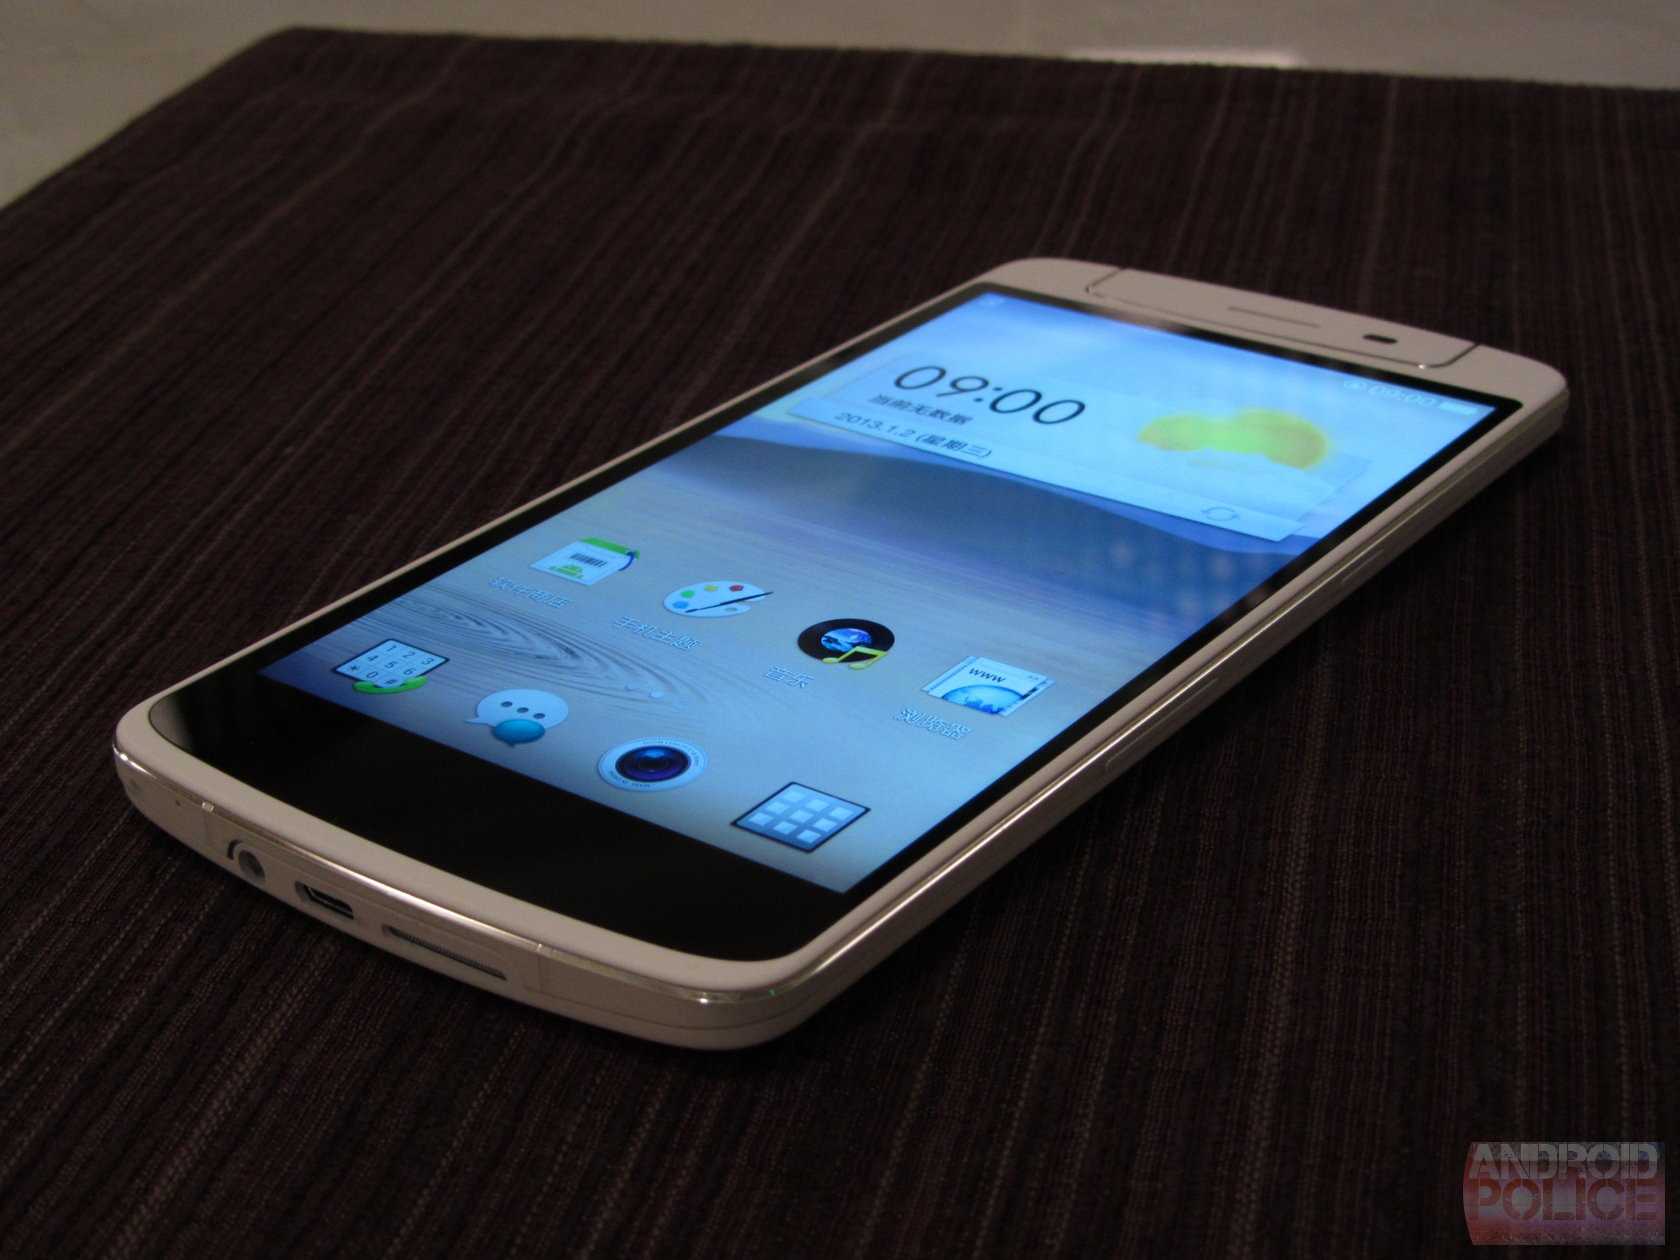 Hands-On With The Oppo N1